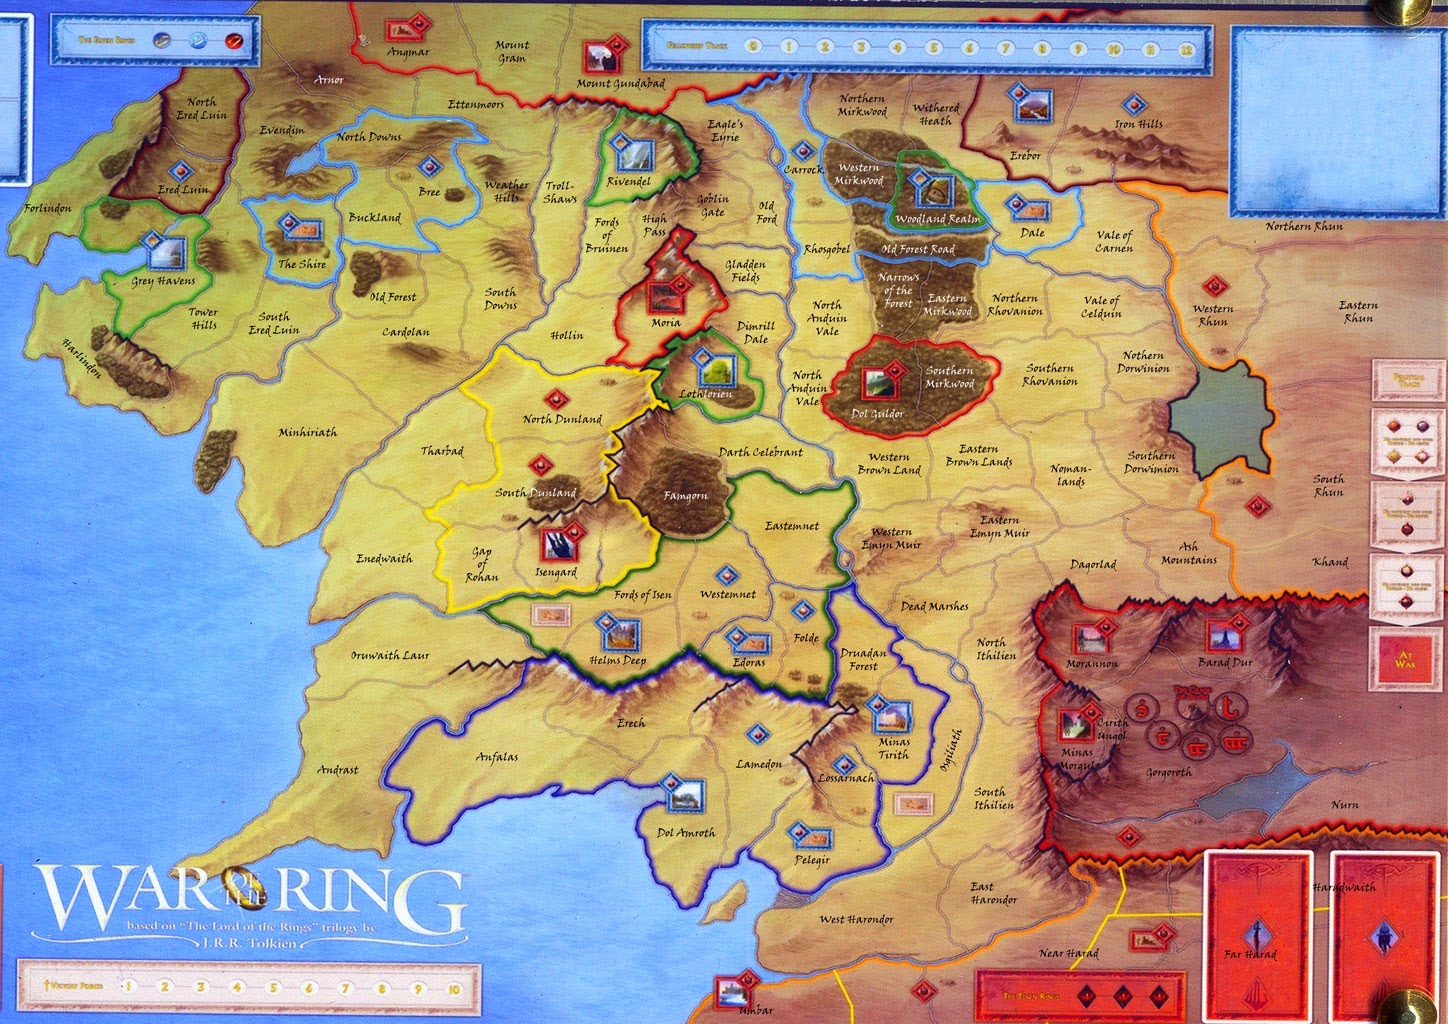 Warlord 39 s War of the Ring Blog War of the RIng Map Campaign